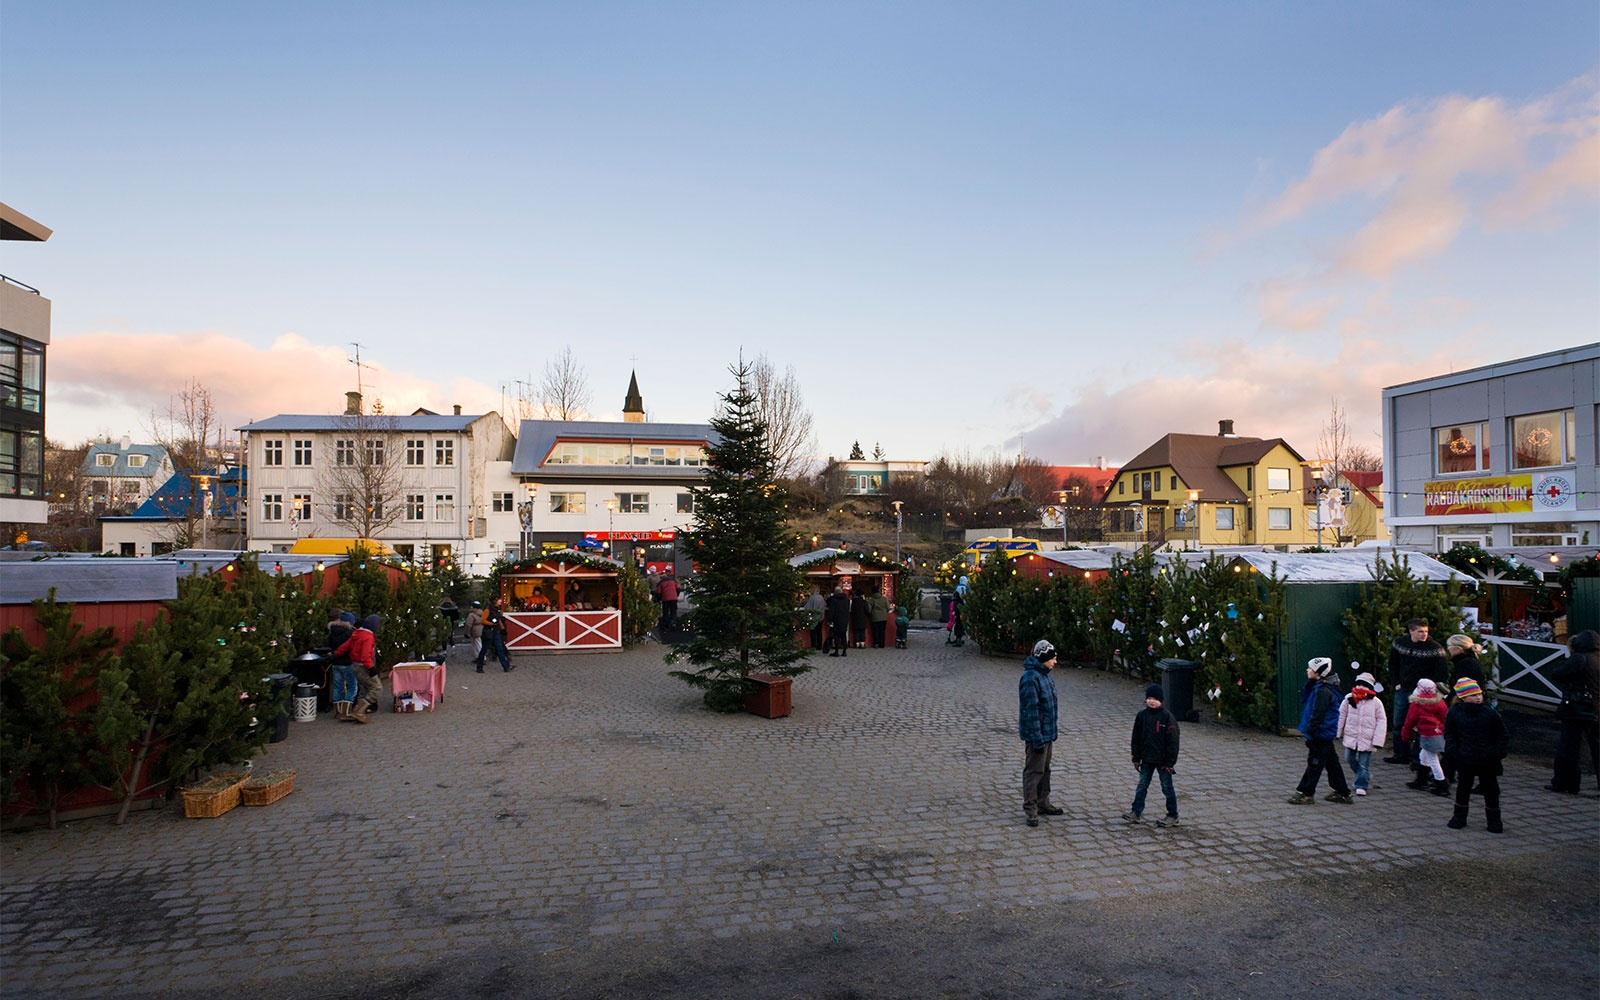 christmas getaways in reykjavk iceland - Best Christmas Getaways